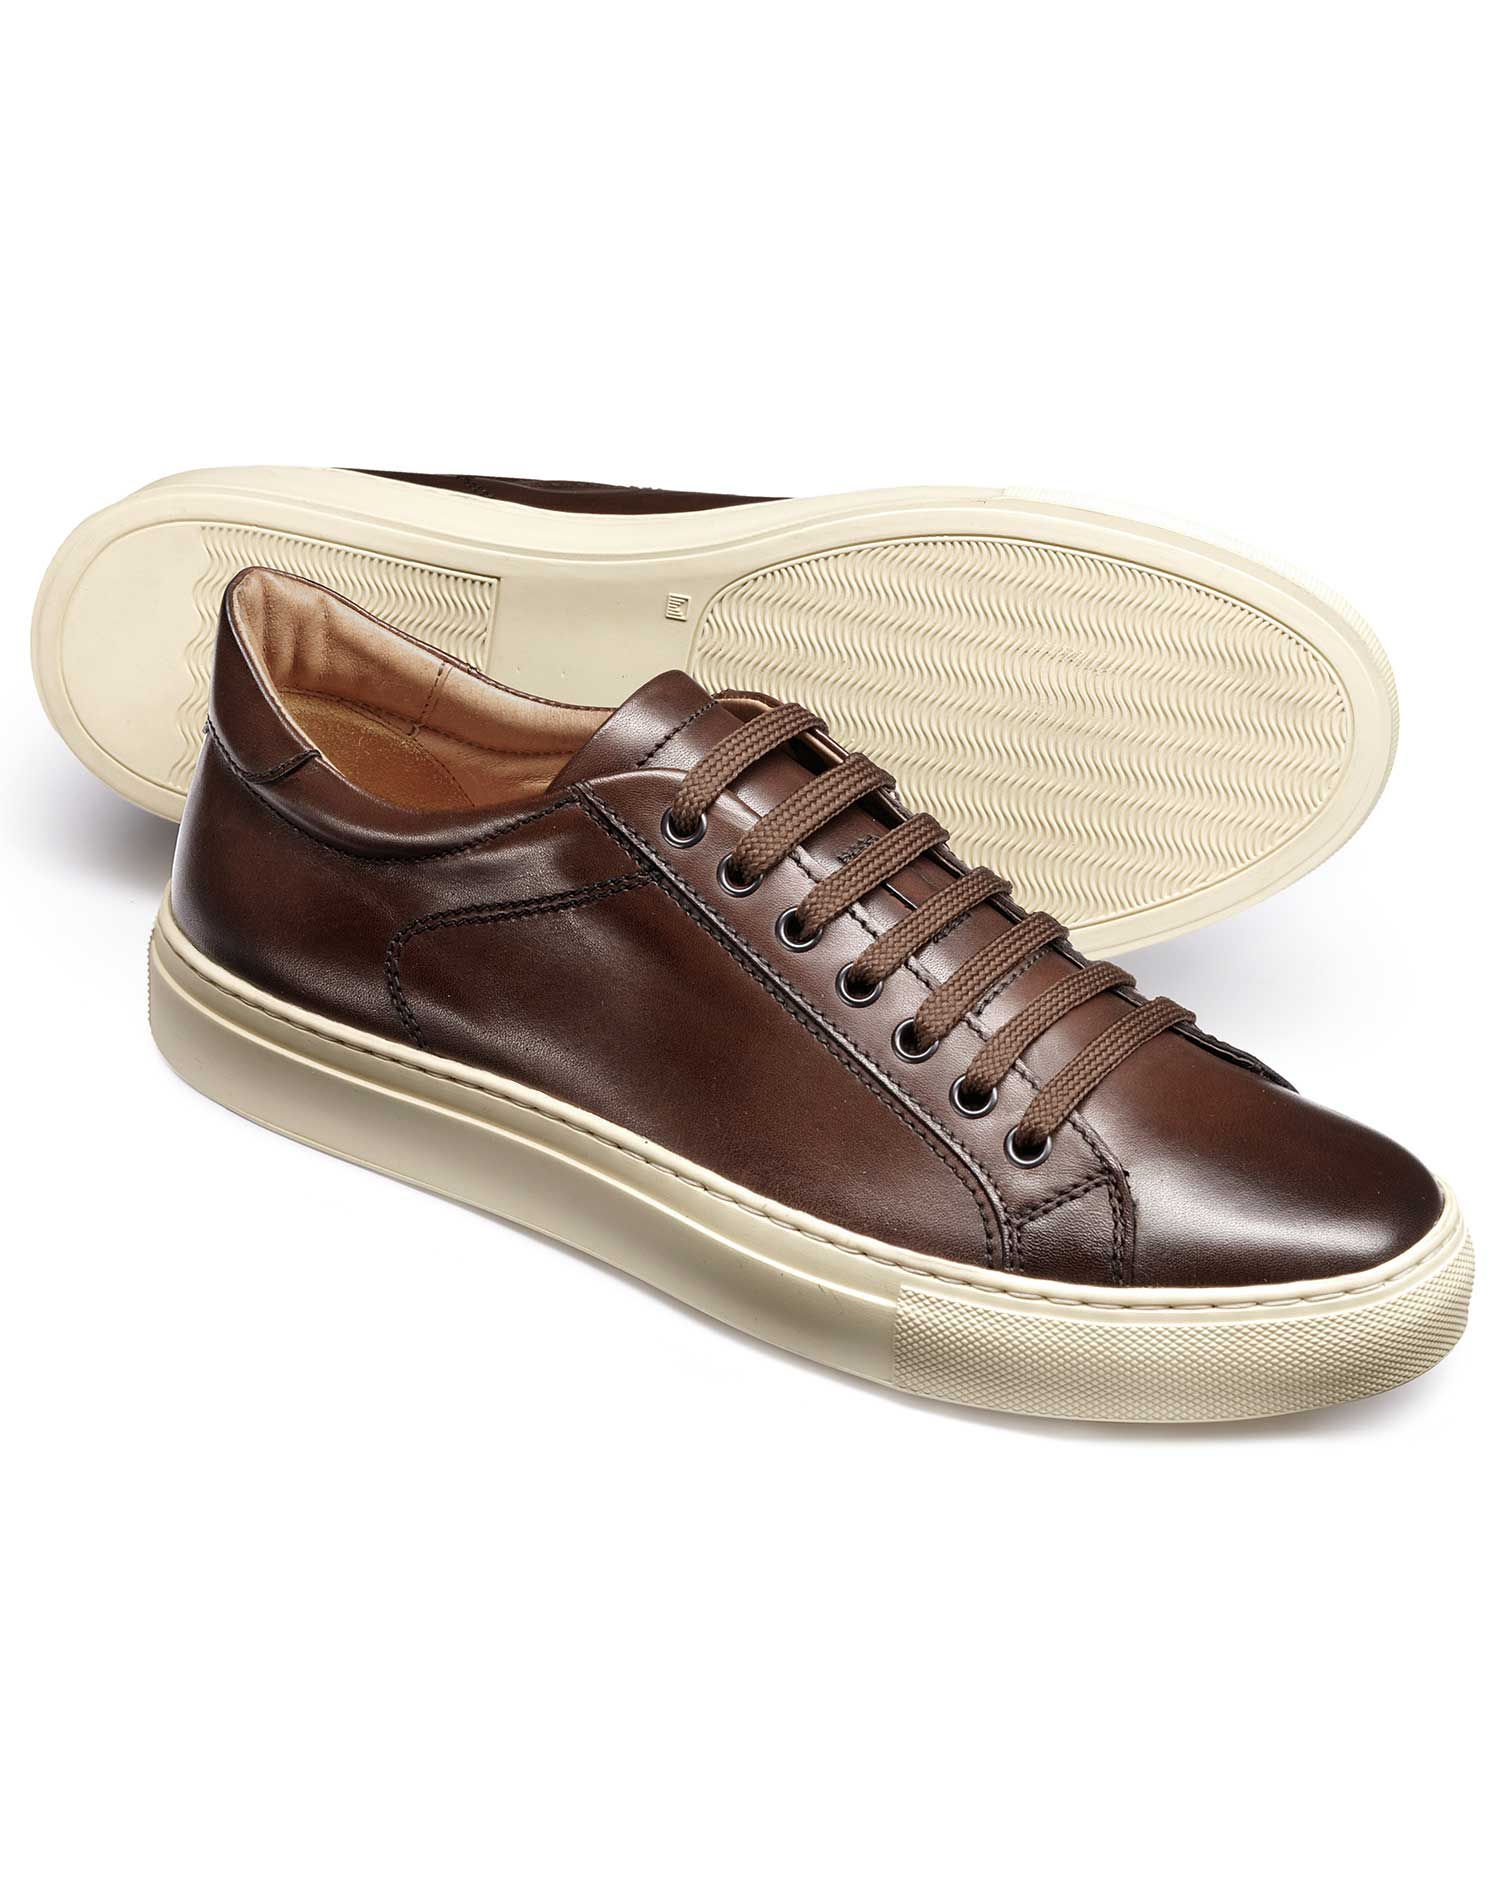 Brown Tutwell Trainers Size 8 R by Charles Tyrwhitt